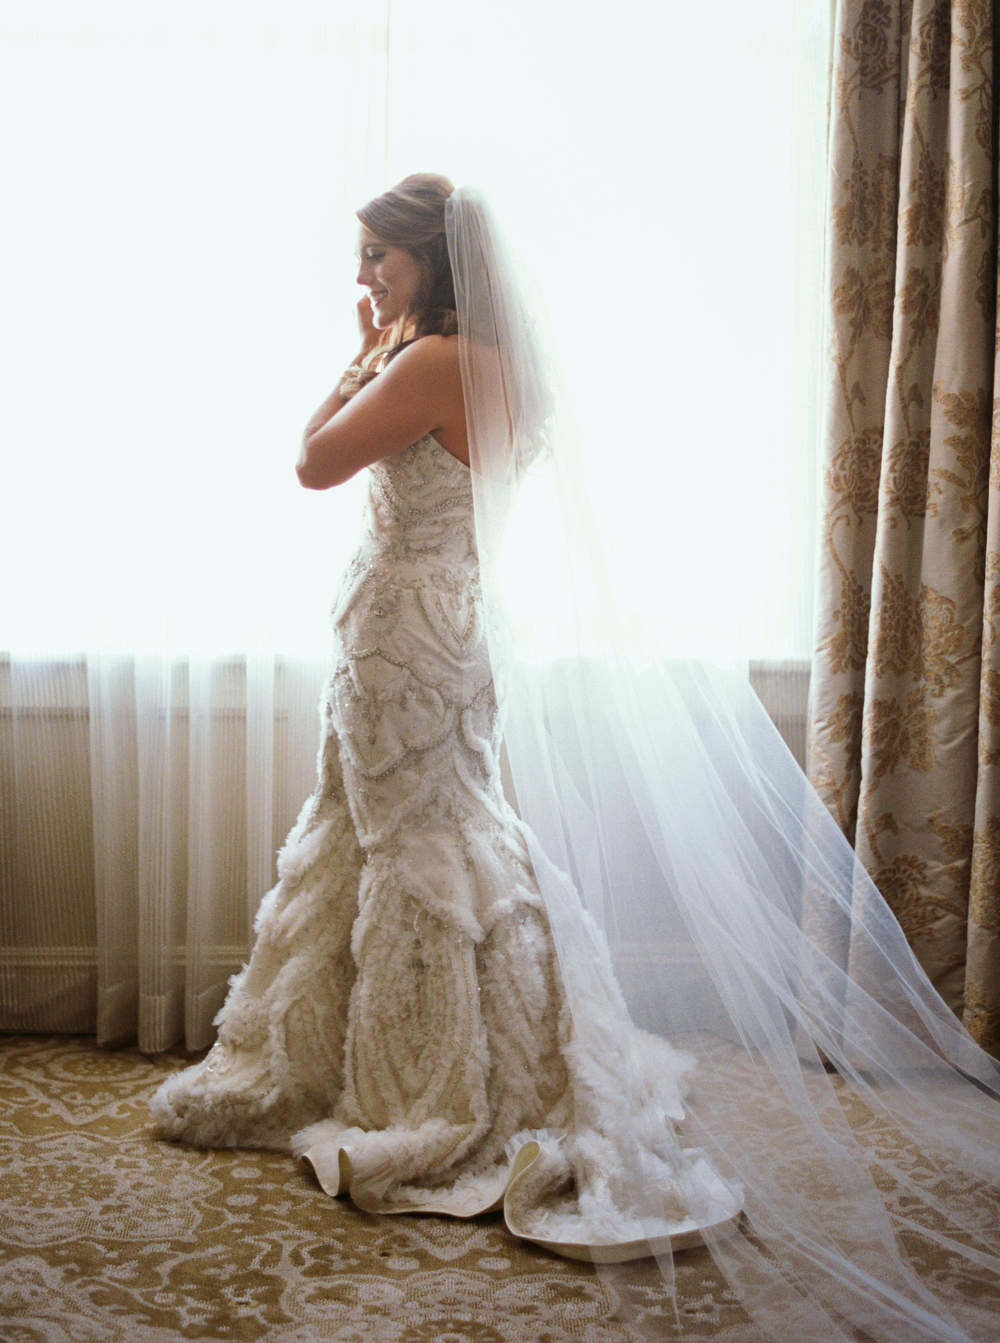 full length of bride standing in wedding gown with long veil by a window